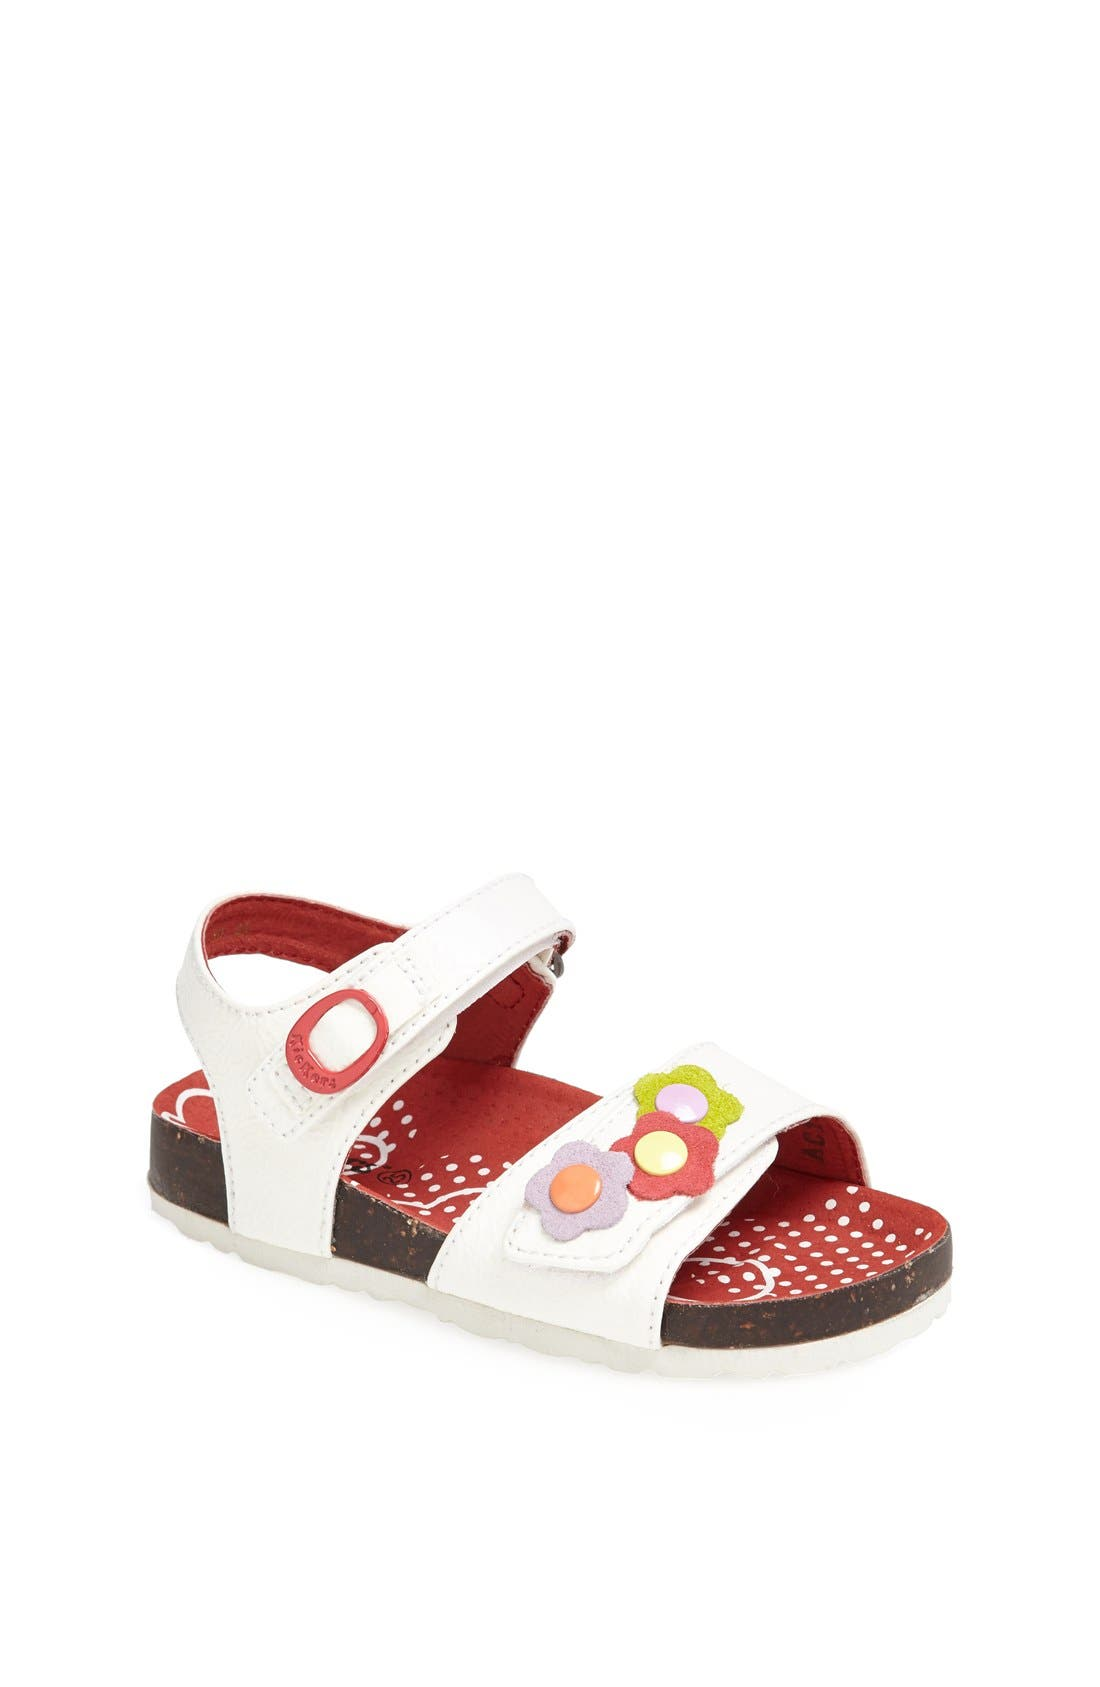 Alternate Image 1 Selected - Kickers 'Magiflower' Sandal (Toddler, Little Kid & Big Kid)